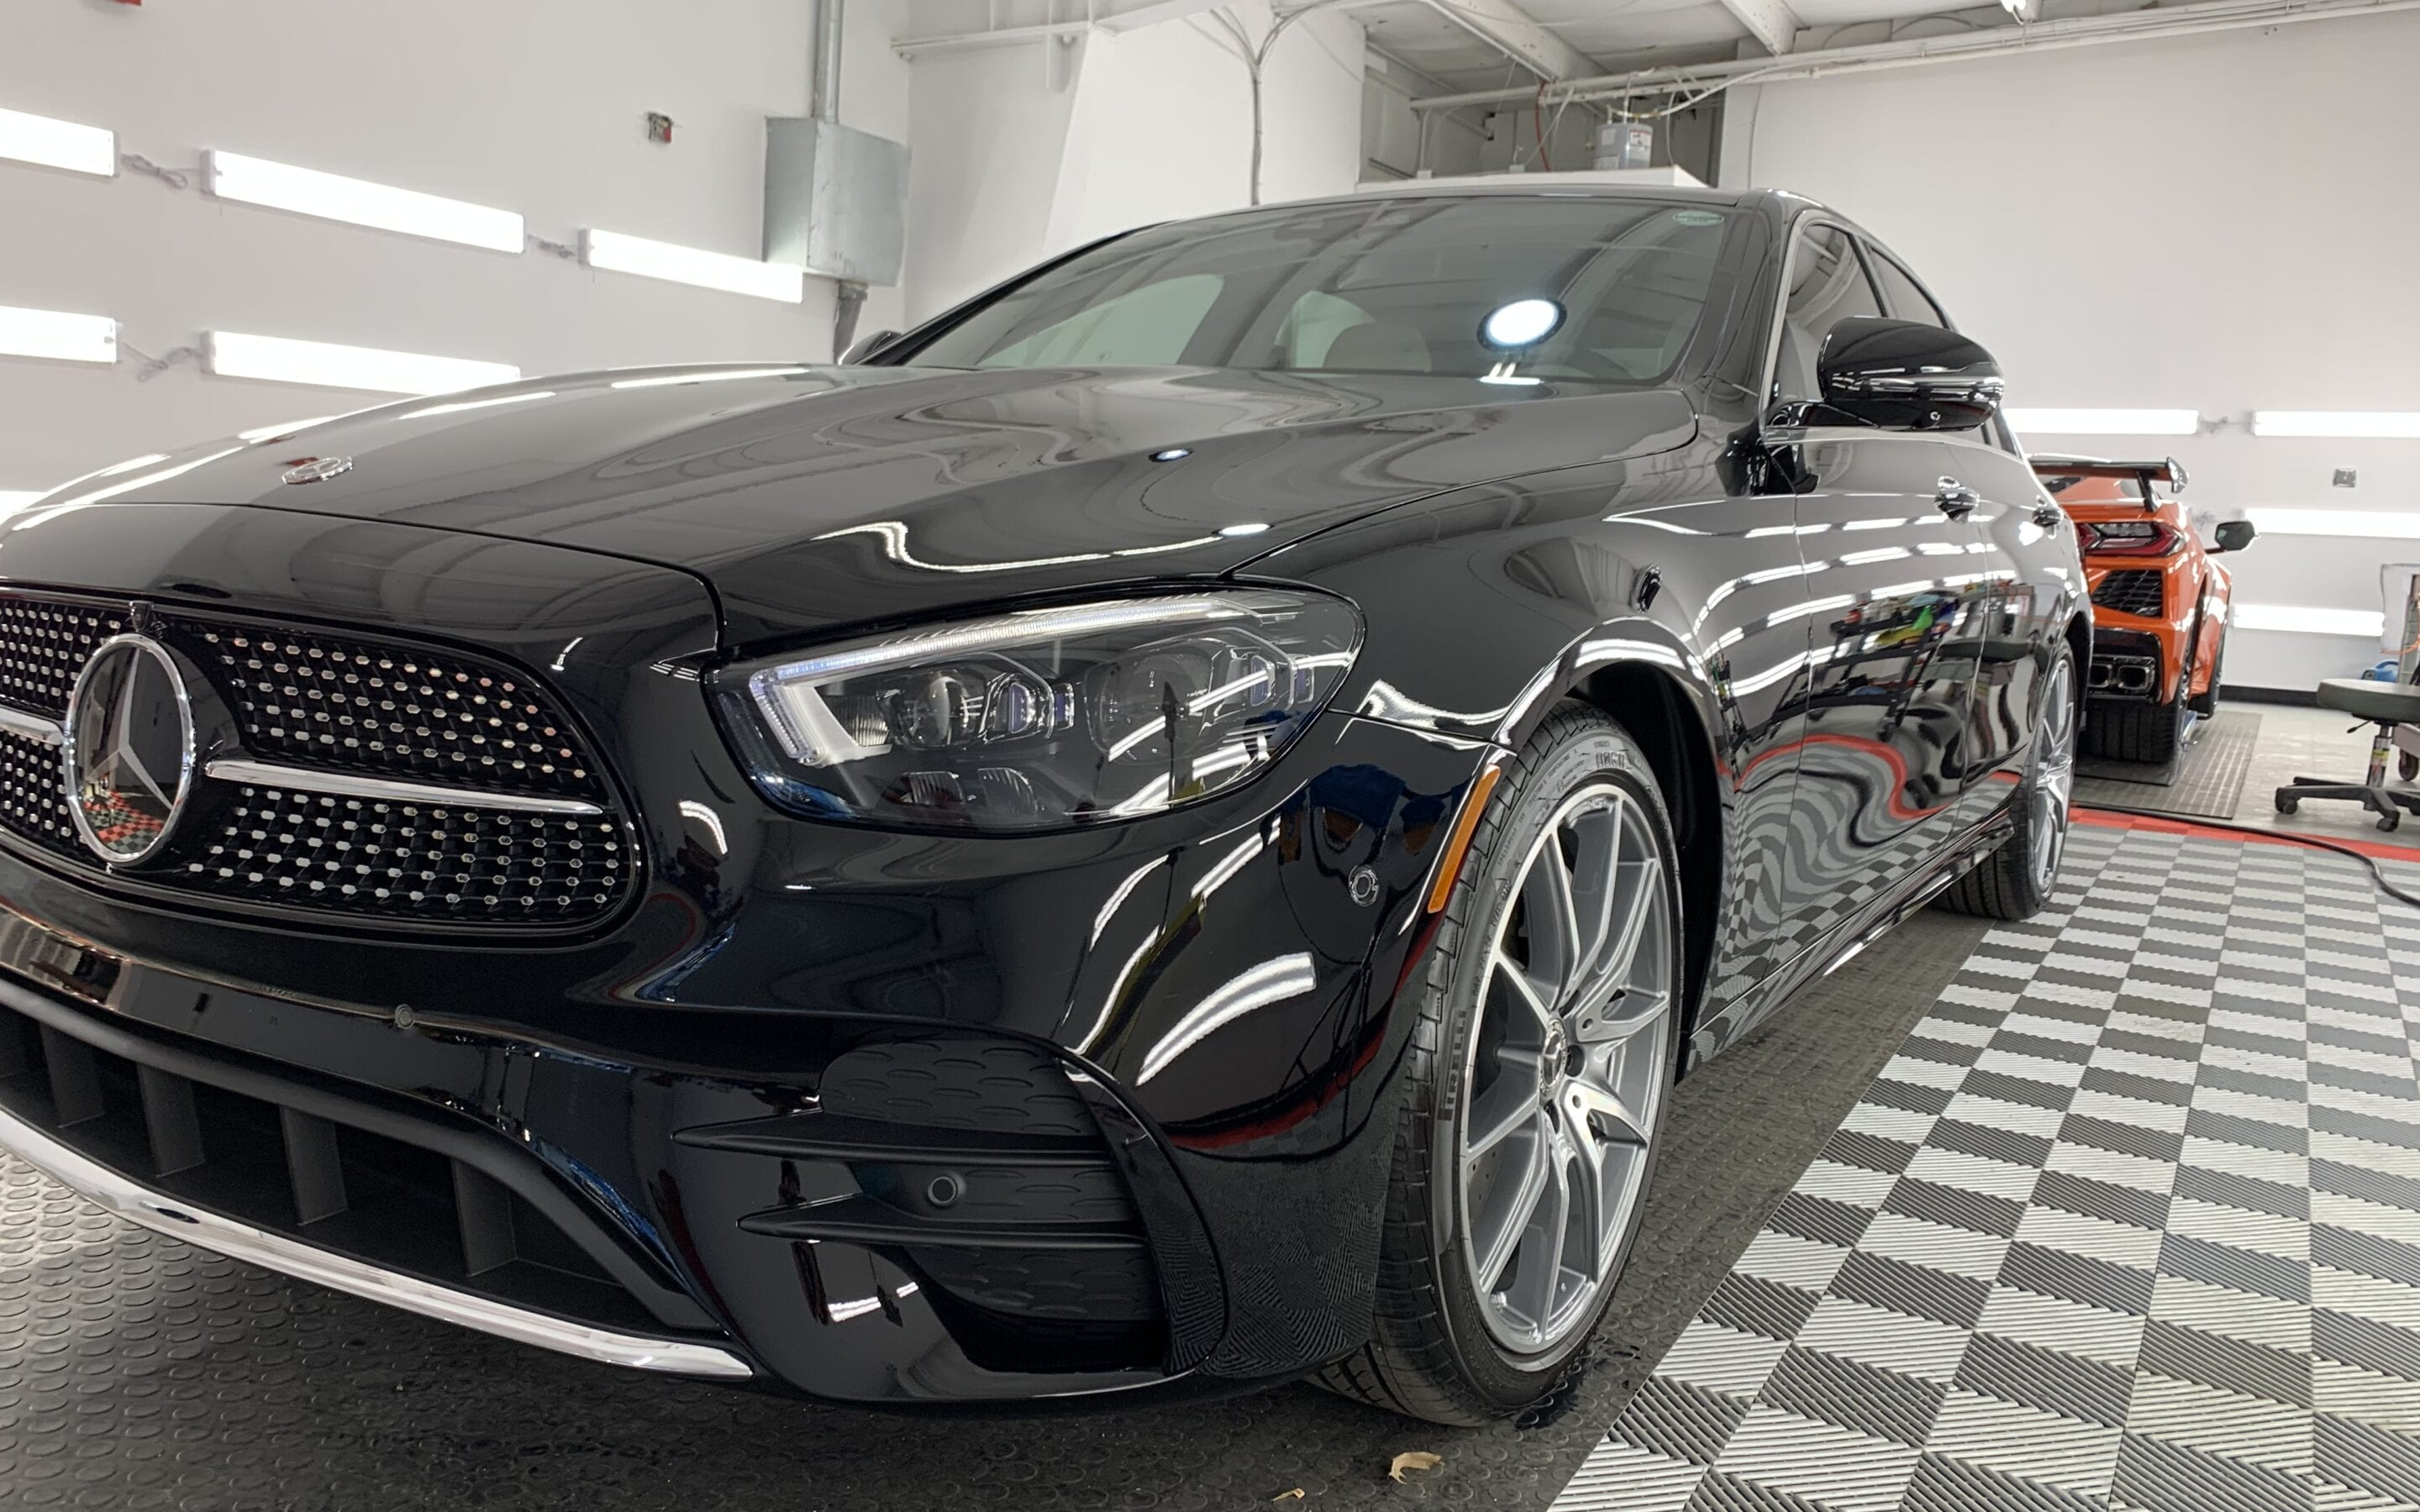 New Car Preparation of a 2020 Mercedes E-Class